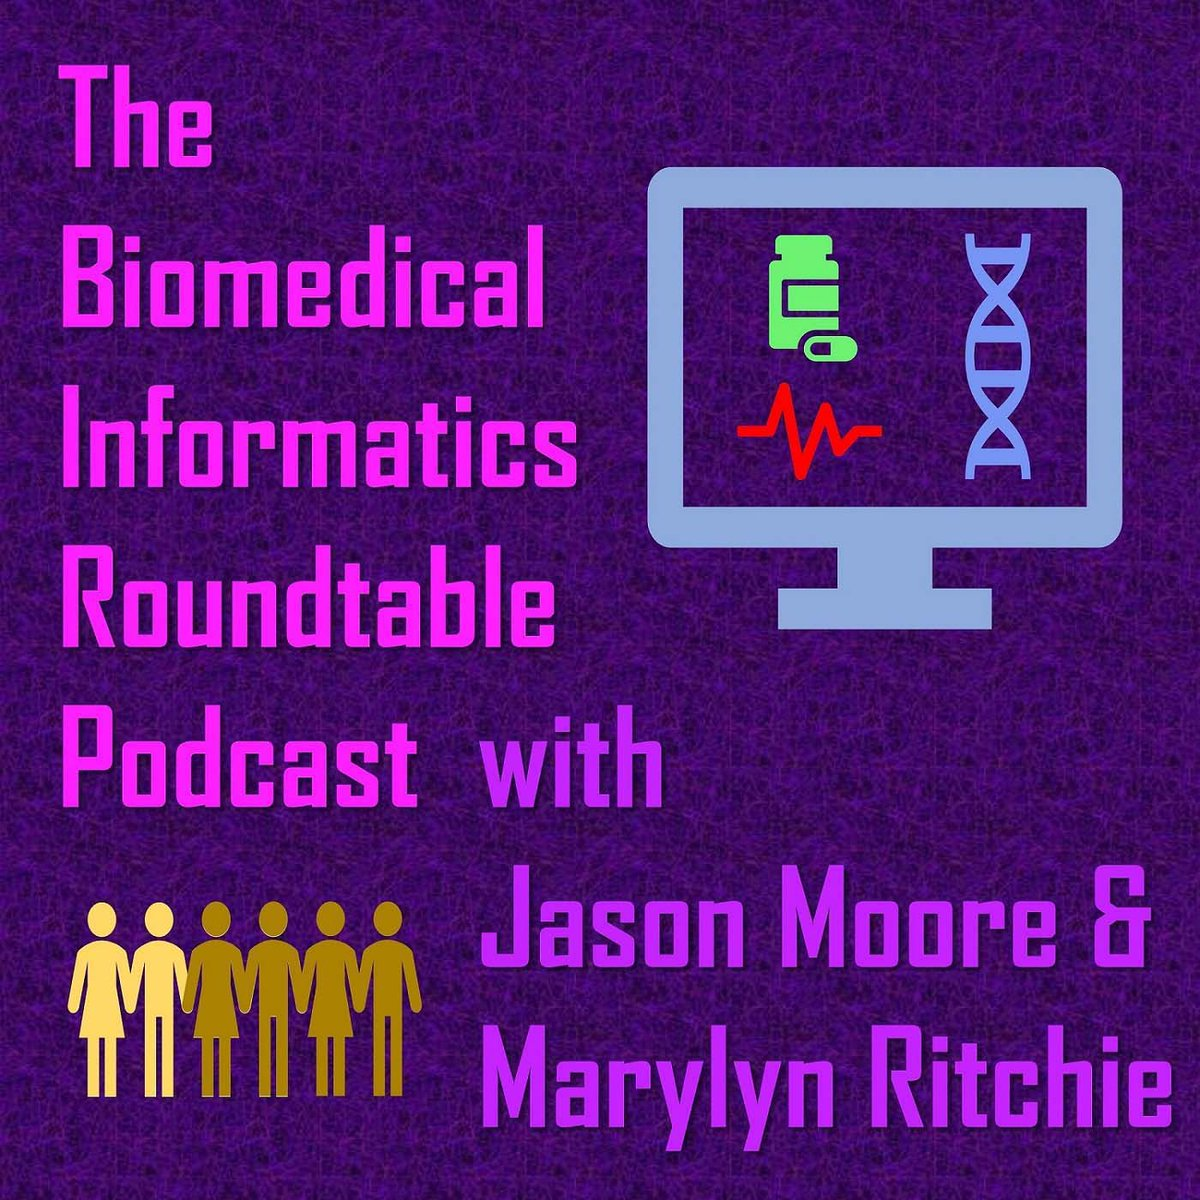 test Twitter Media - RT @BMIRPodcast Our second podcast has been published! We discuss machine learning model interpretation and present a paper on mobile health. We also feature @BenGlicksberg talking about his open-source software package ROMOP and discuss impostor syndrome. https://t.co/02uwg7huDb https://t.co/L3uY72efbt